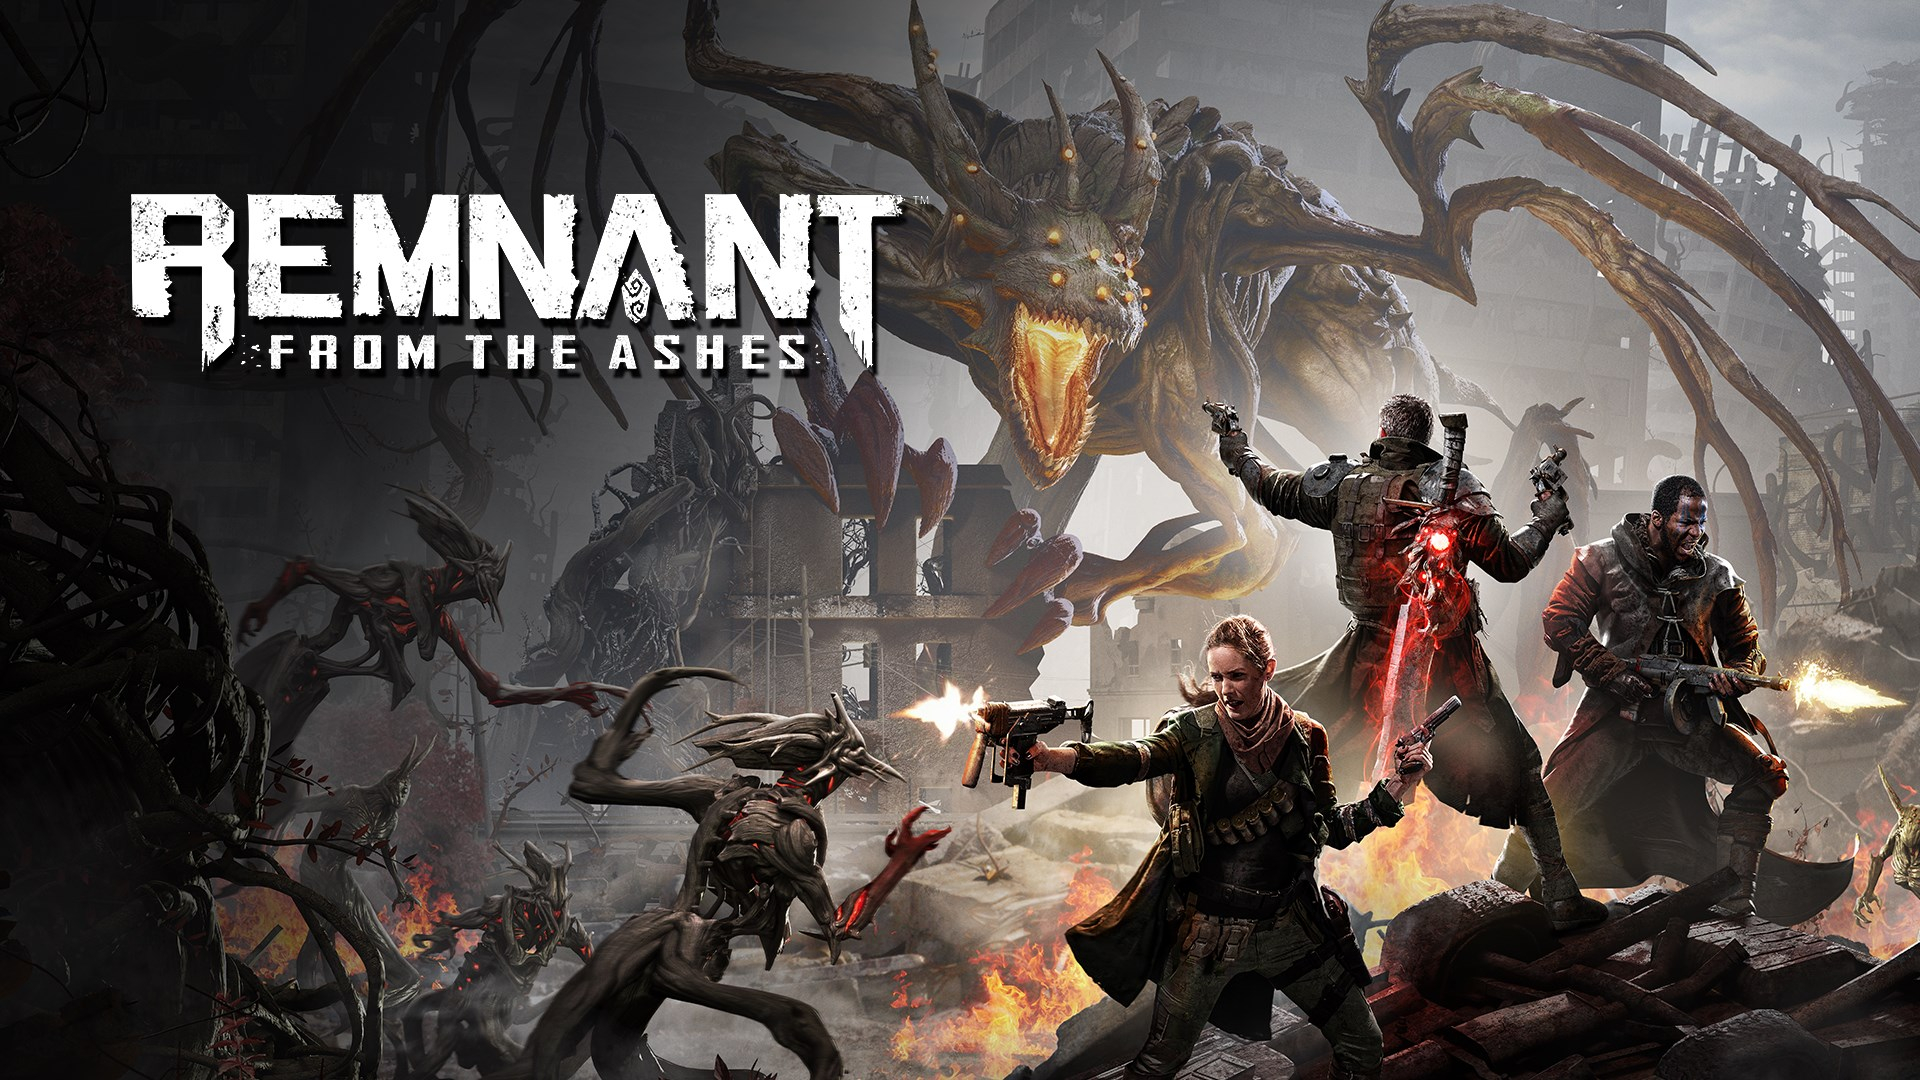 Remnant: From the Ashes Masthead